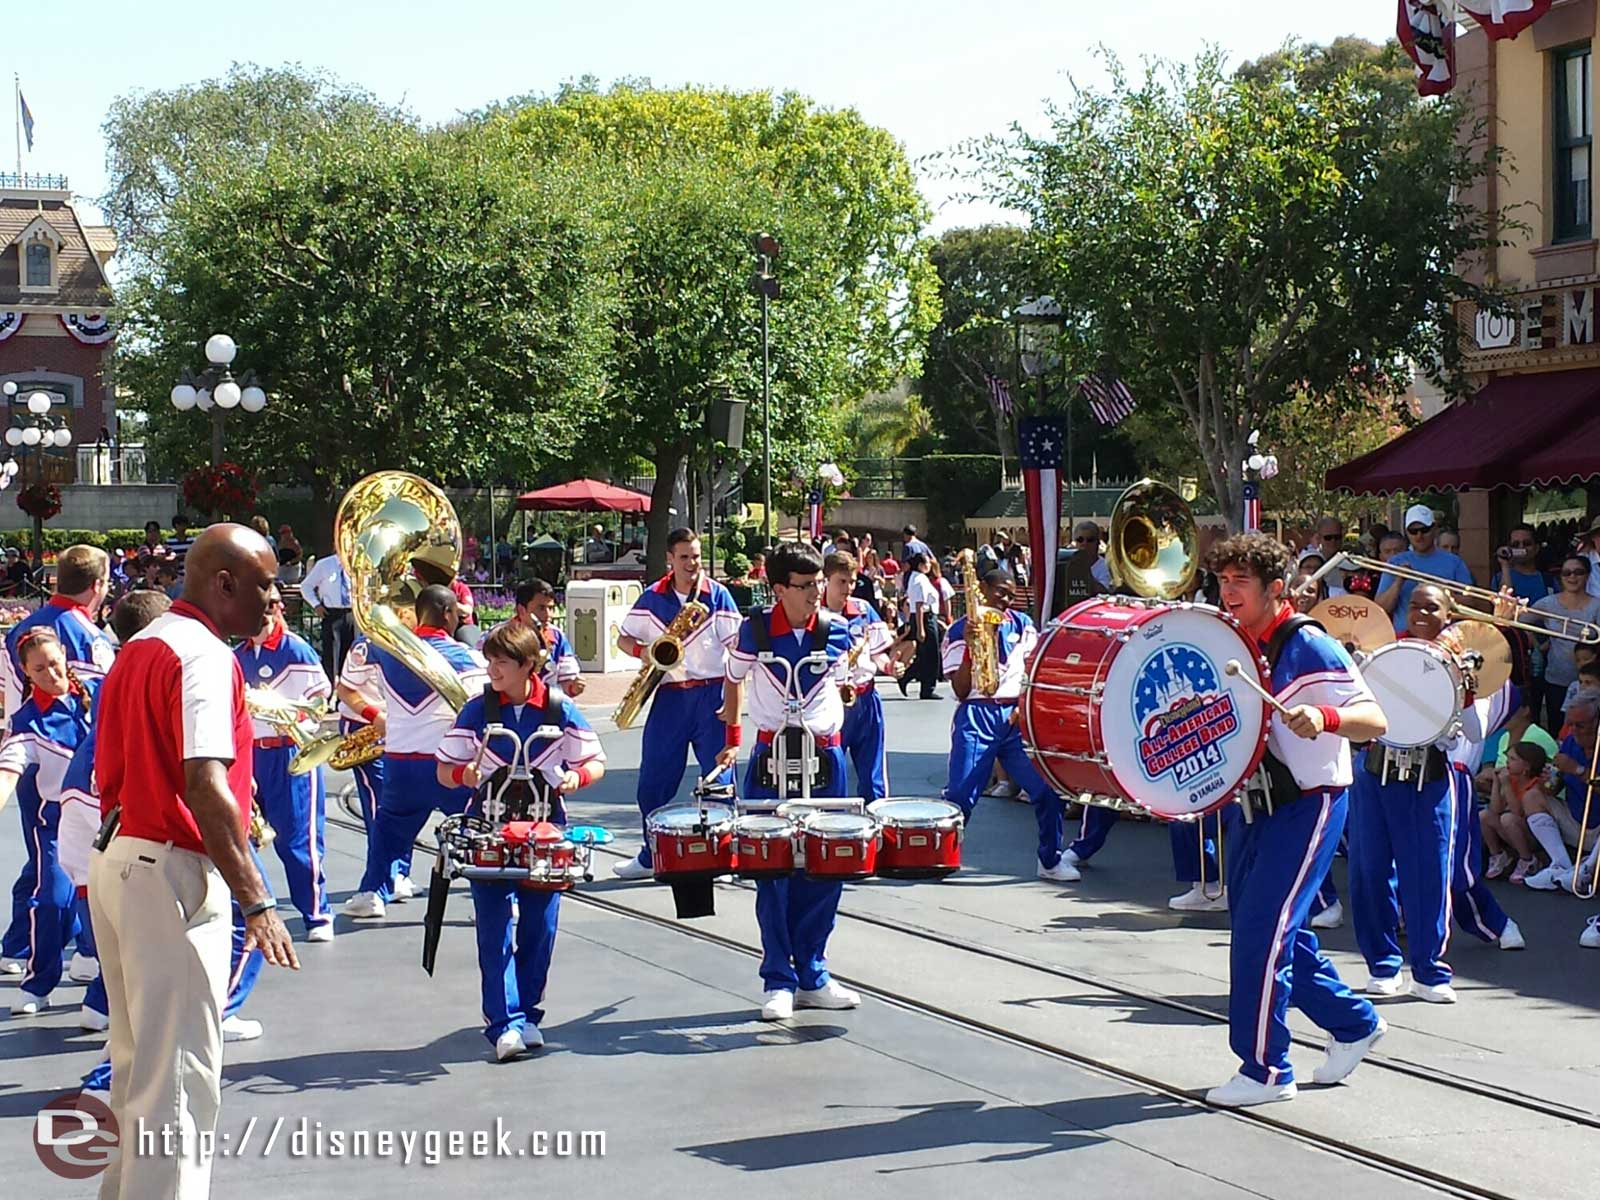 2014 All American College Band performing on Main Street USA